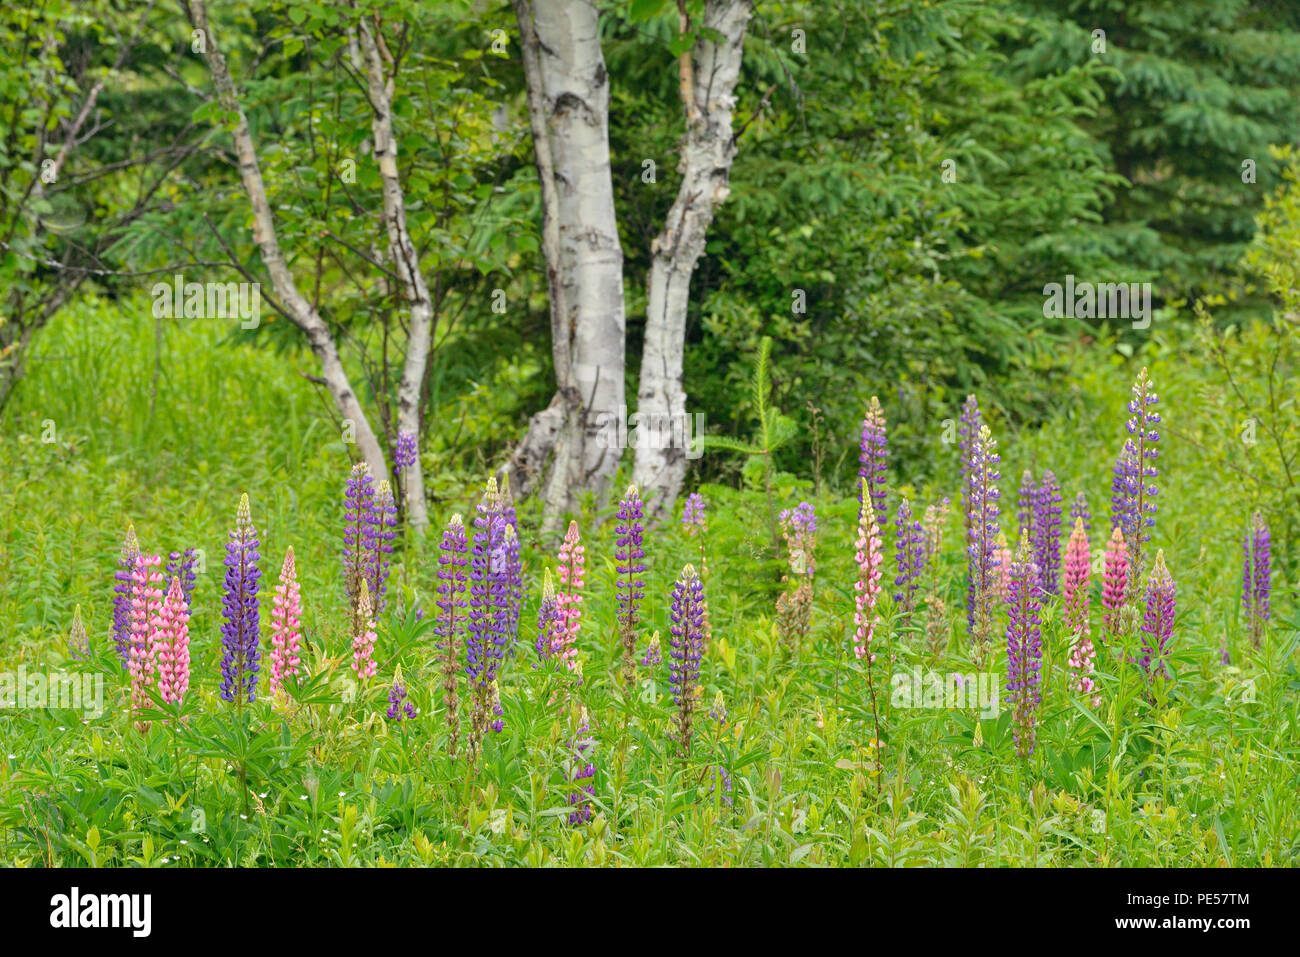 Flowering lupines in a meadow, Greater Sudbury, Ontario, Canada - Stock Image